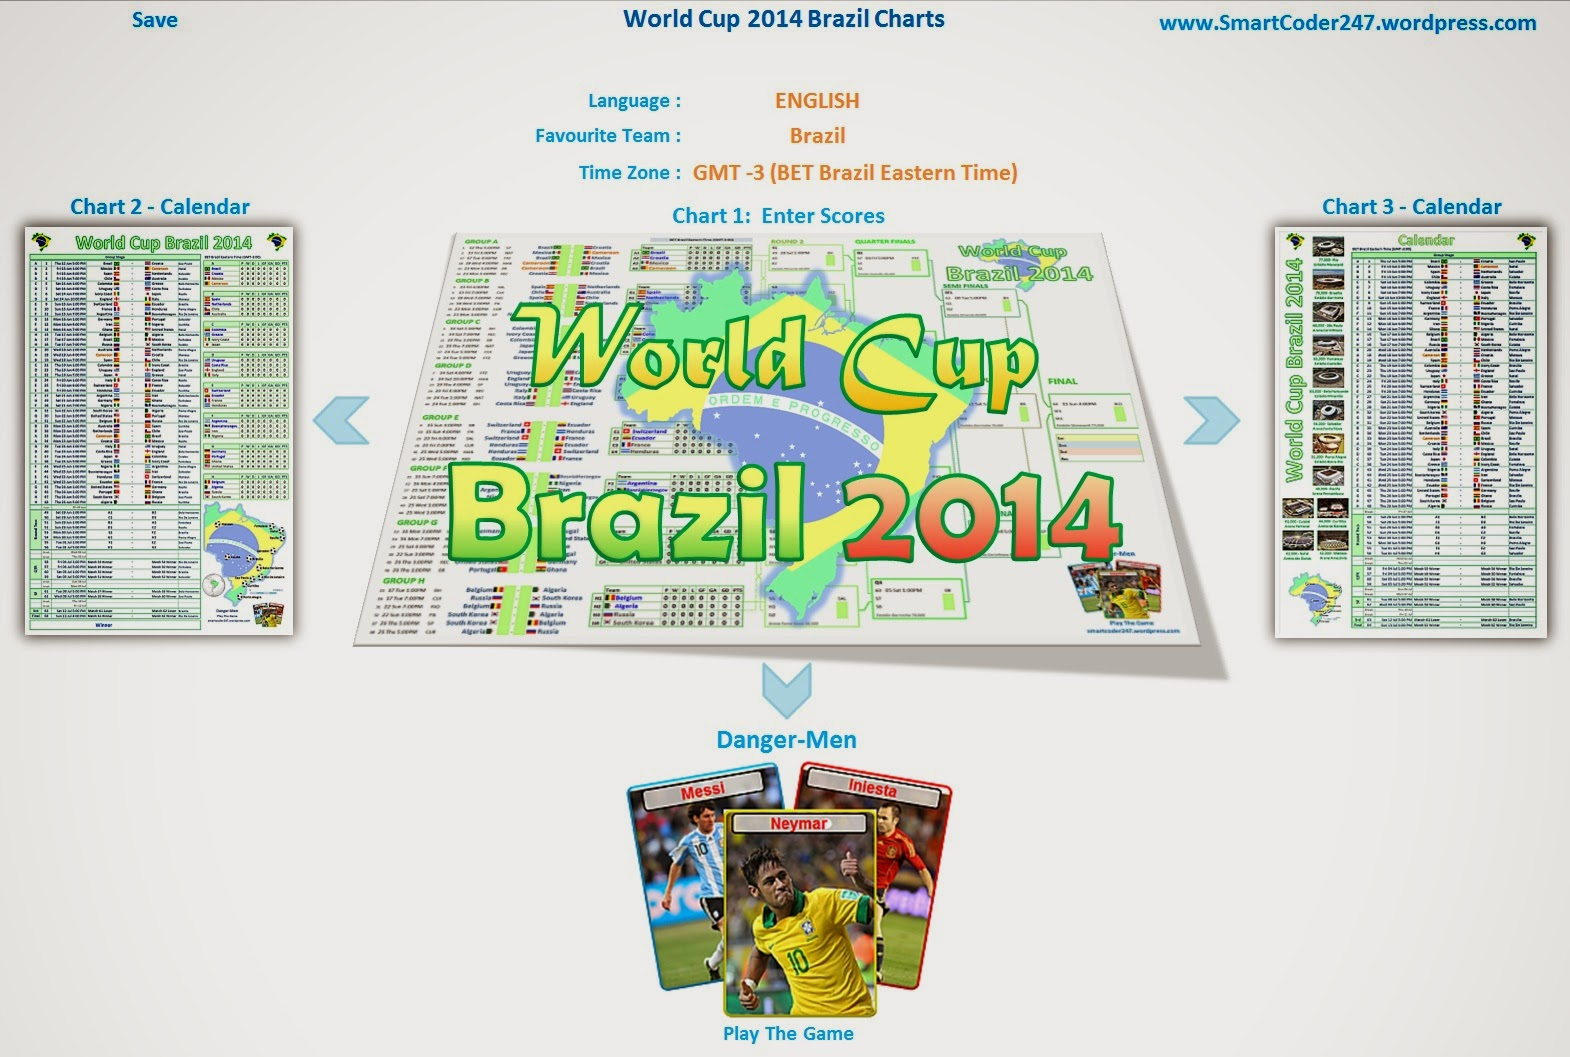 Smartcoder Brussia B Bworld Bcup as well Smartcoder Bworld Bcup B Brussia Bexcel Btemplates Bfixtures Bschedule Btime Btable B B in addition Brazil World Cup Germany World Cup Ch ions further Website Main Logo For Russia furthermore pdficon. on option b lite world cup charts for